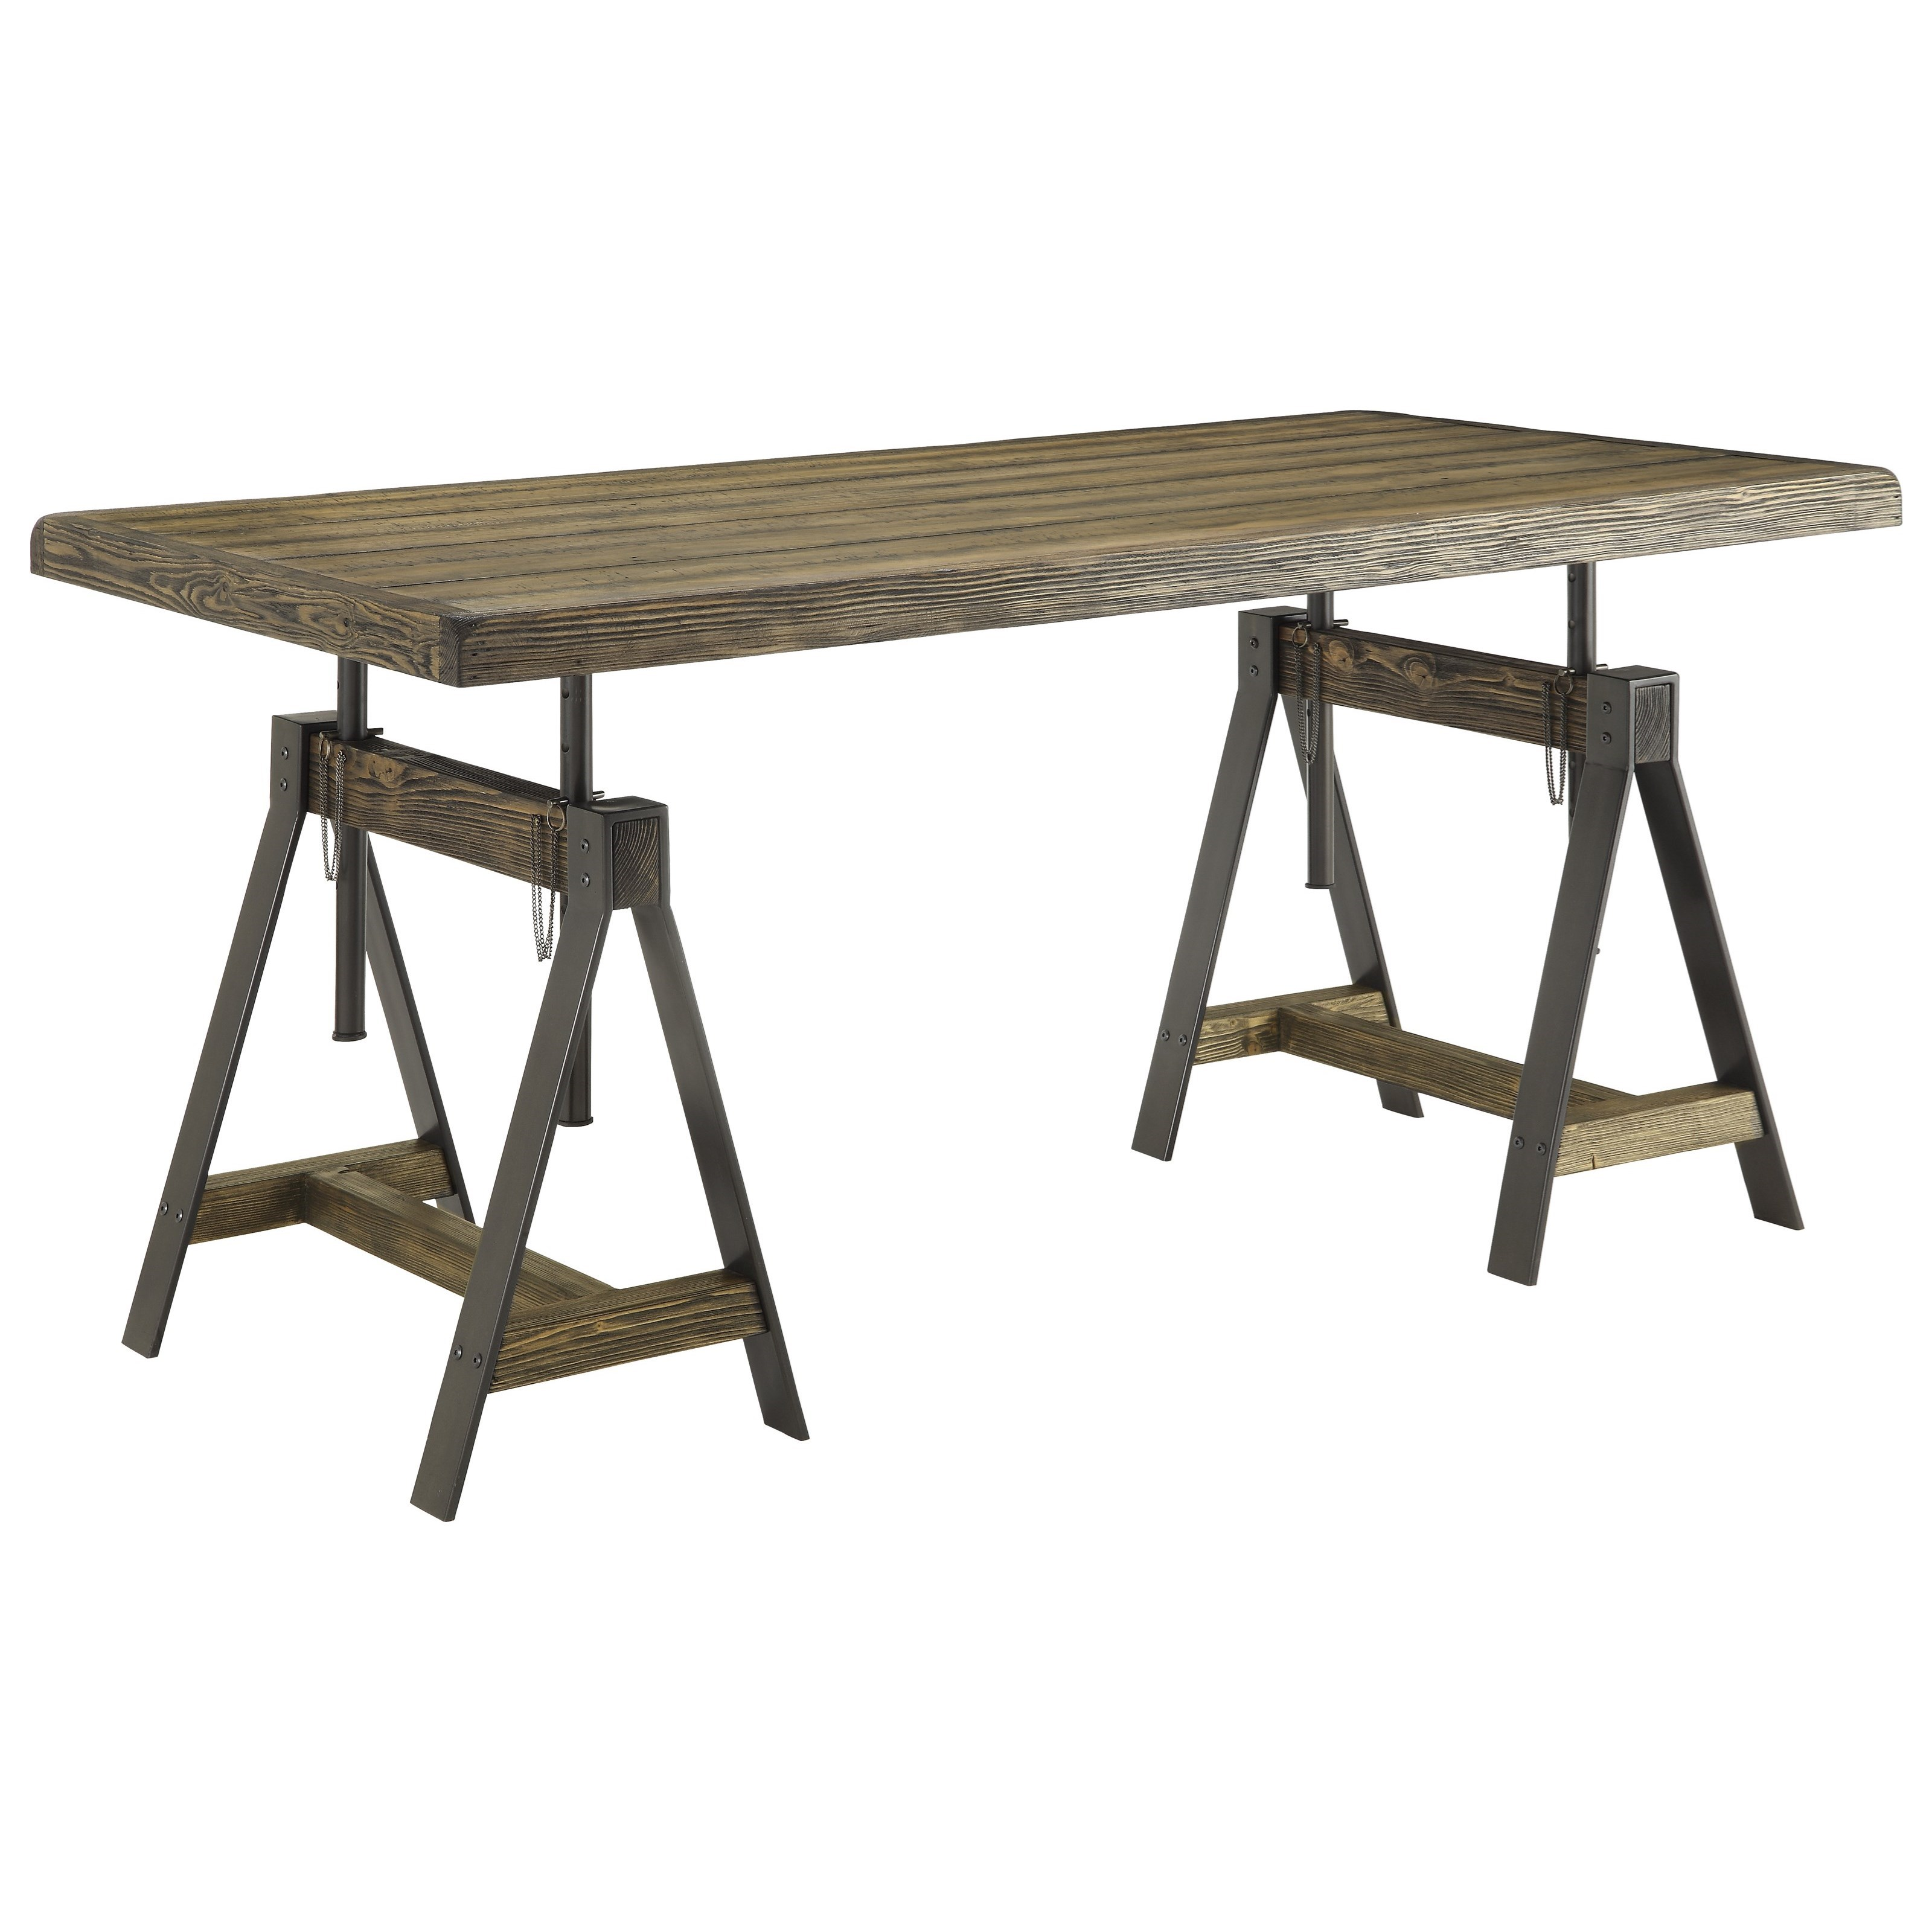 Ruby-Gordon Accents Camden Dining Table - Item Number: 91756